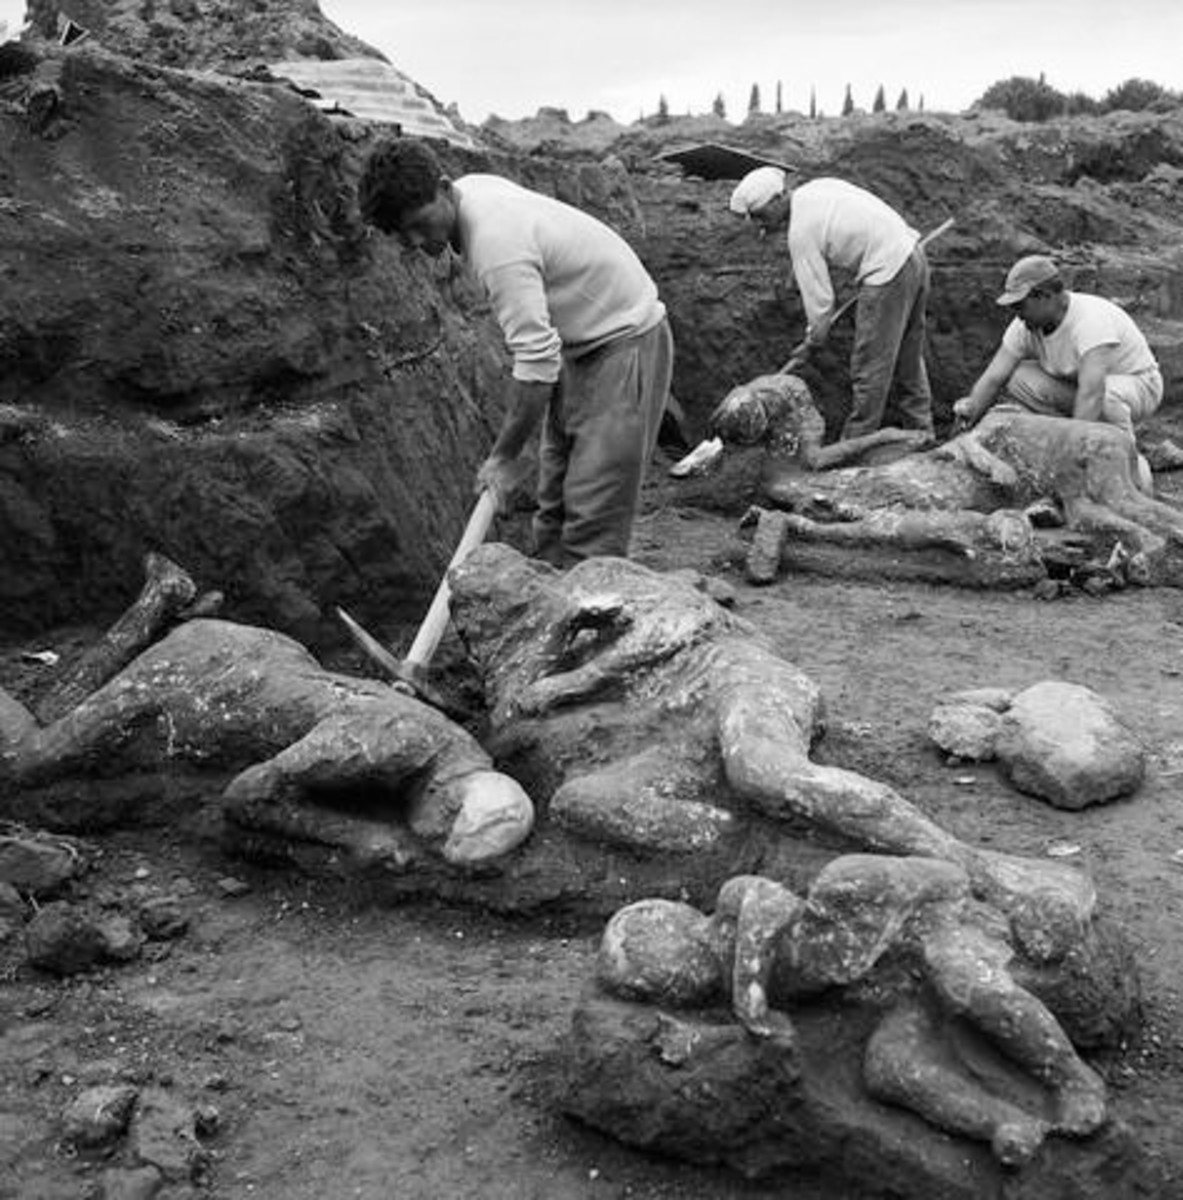 Excavation around plaster casts at Pompeii